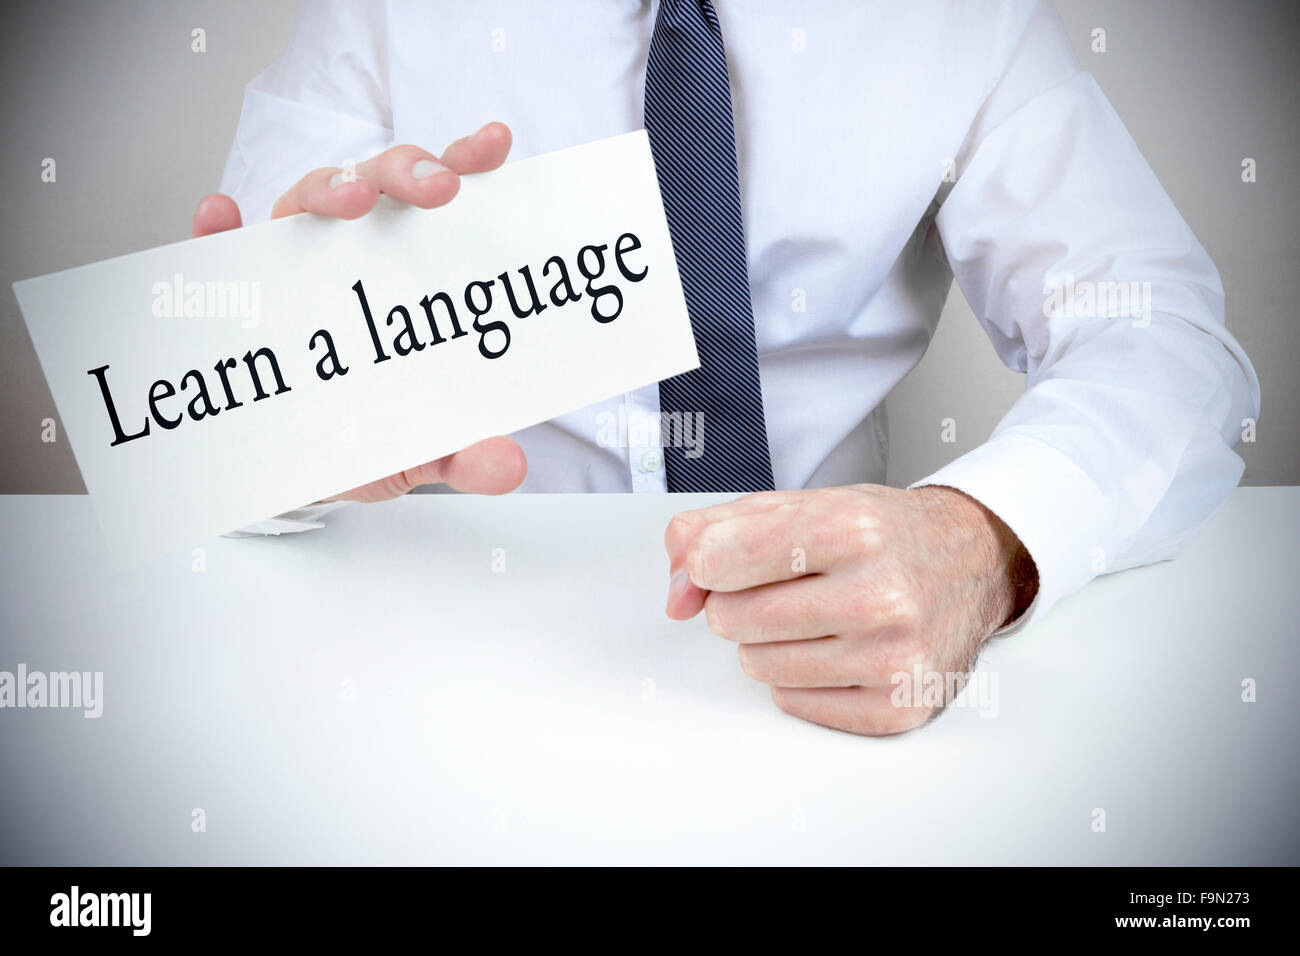 A man dressed in shirt and tie holding up a card to learn a language - Stock Image